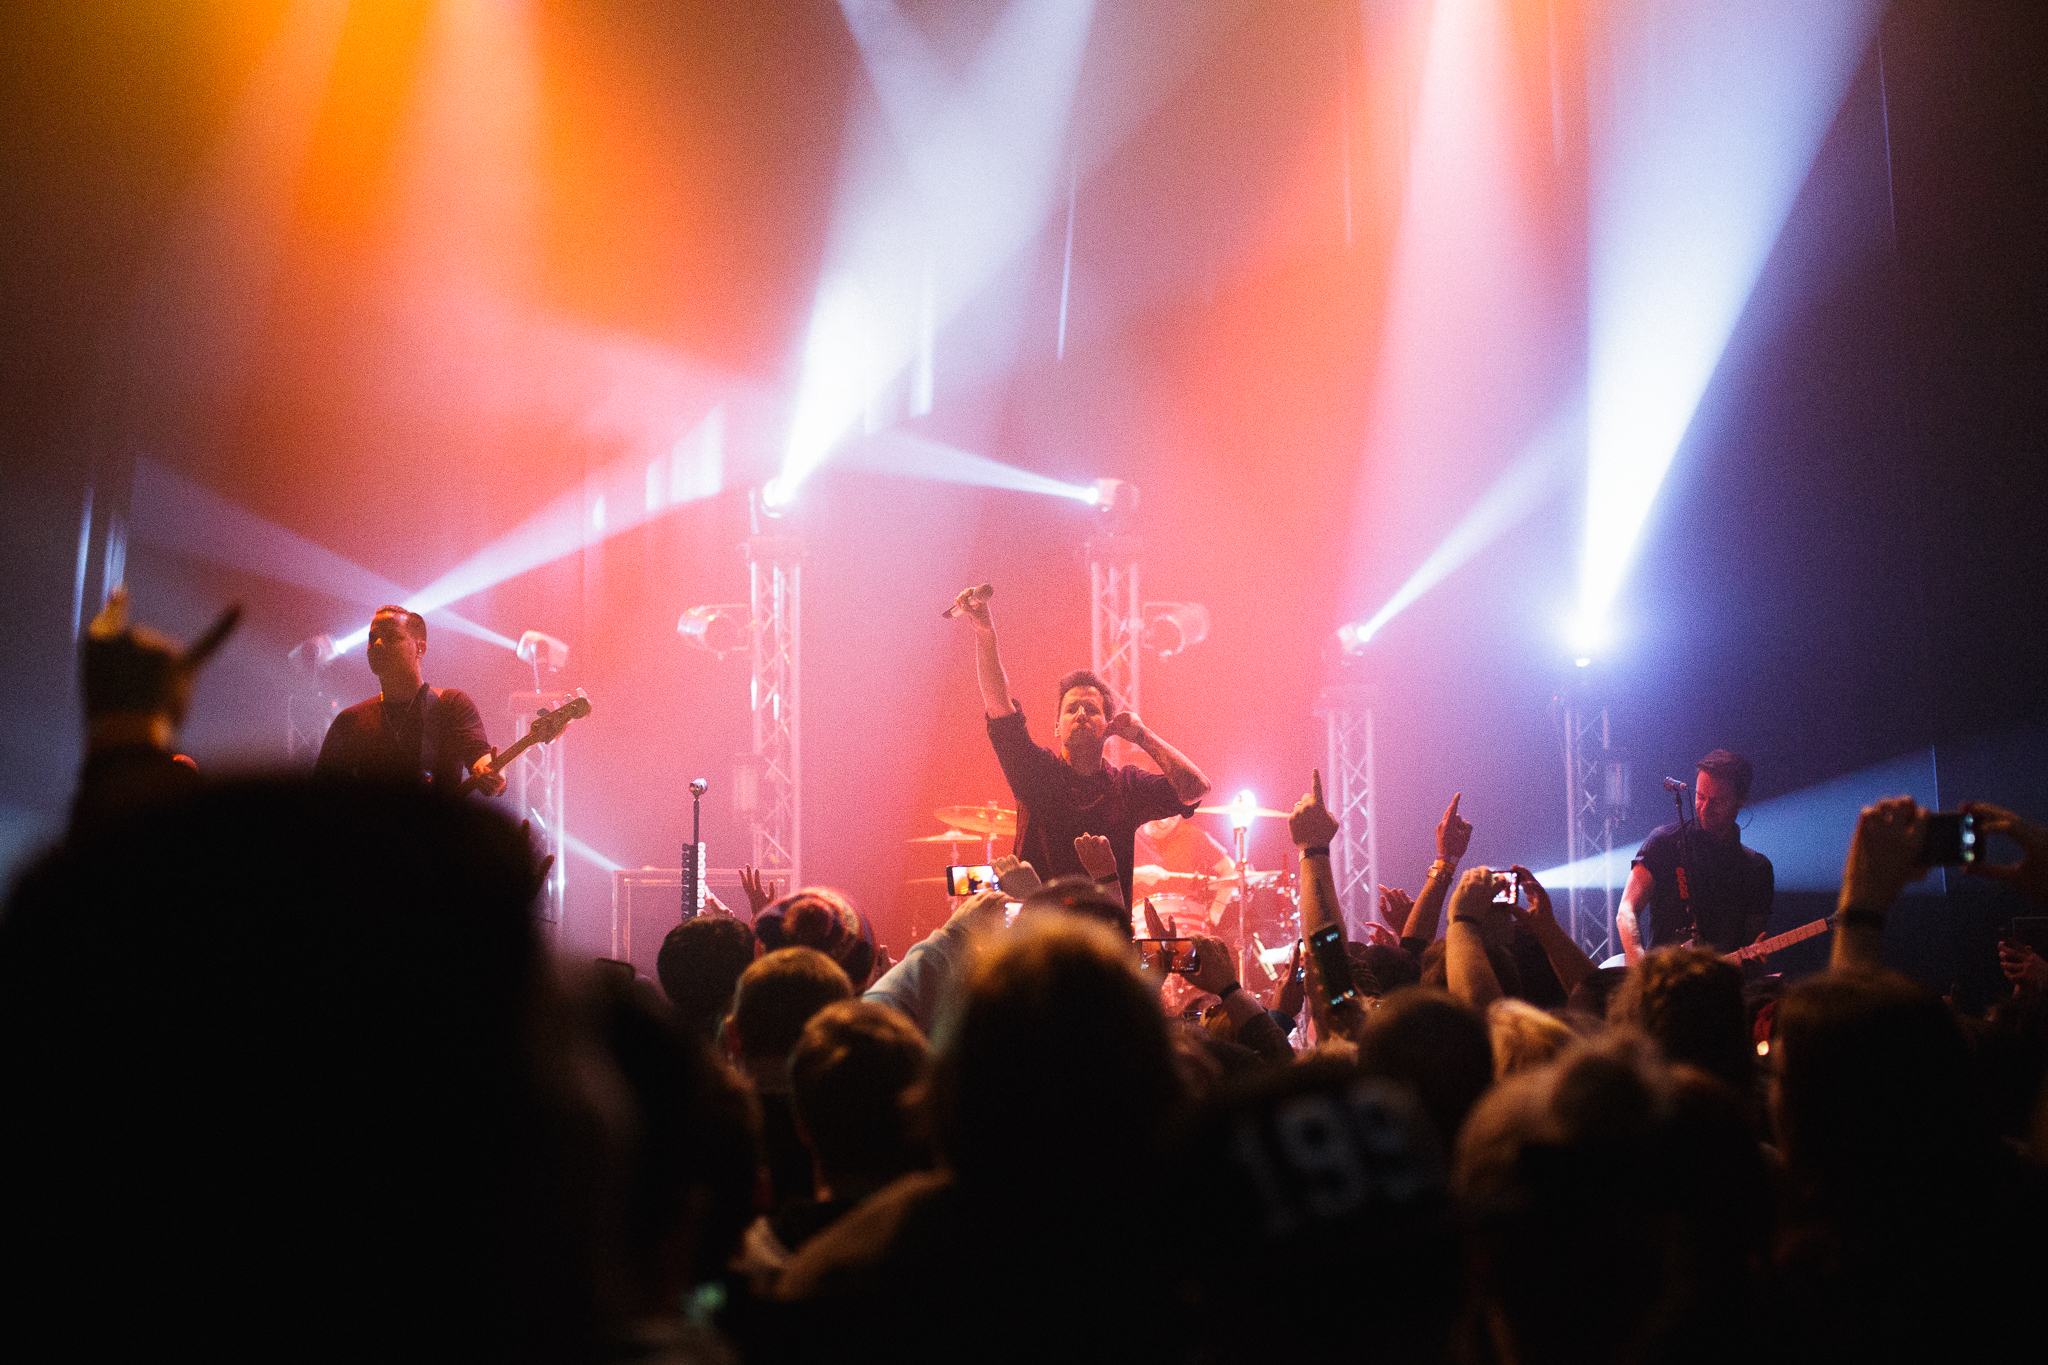 Canadian band Simple Plan on stage at the Olde Walkerville Theatre in a benefit concert presented by Blackburn Radio on February 17, 2016. (Photo by Jason Ploegman)